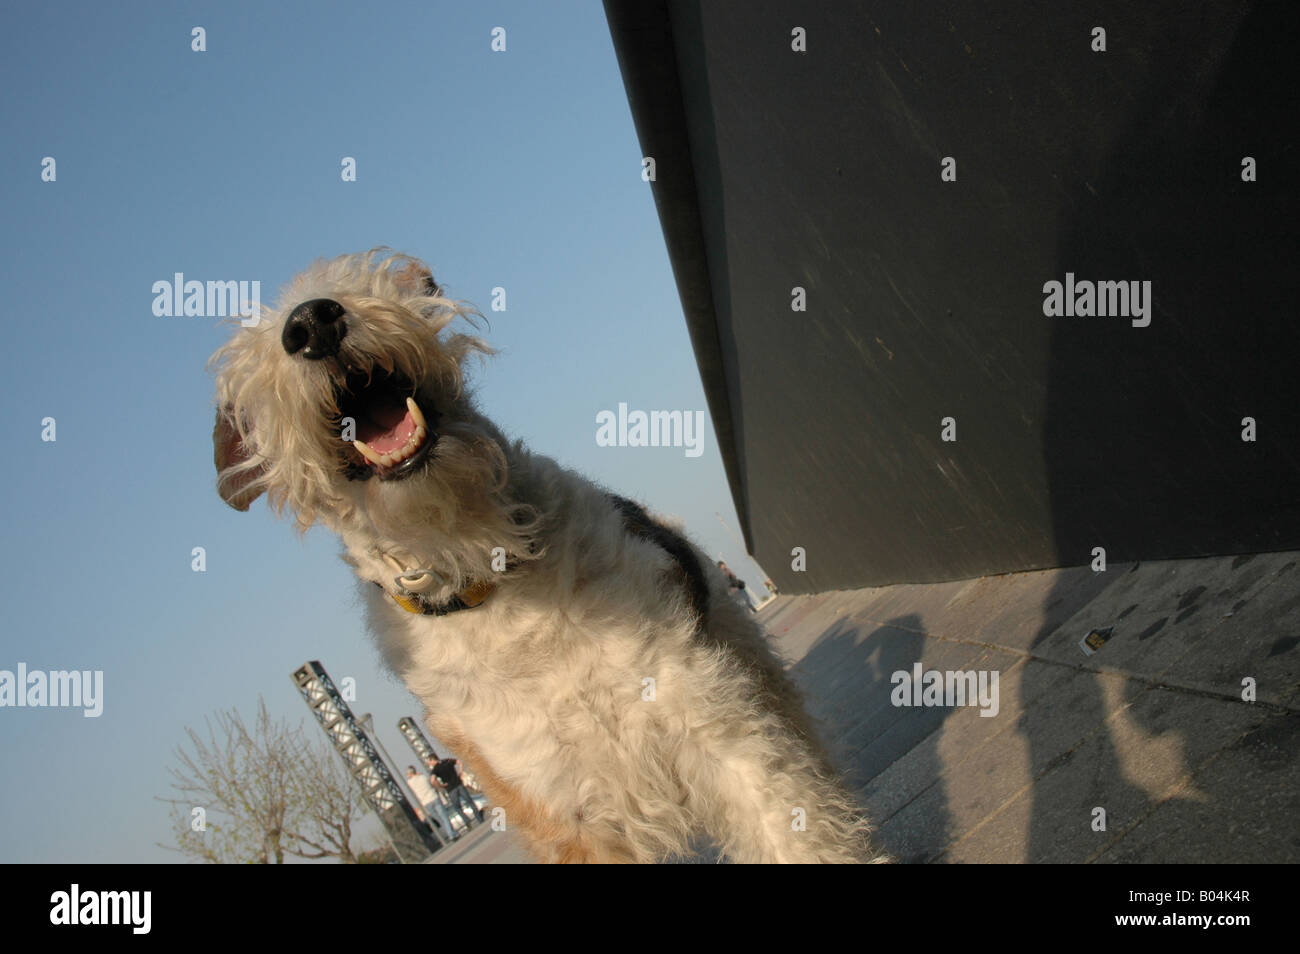 Strand beach sands strand Hund dog Tier animals Haustier pets - Stock Image